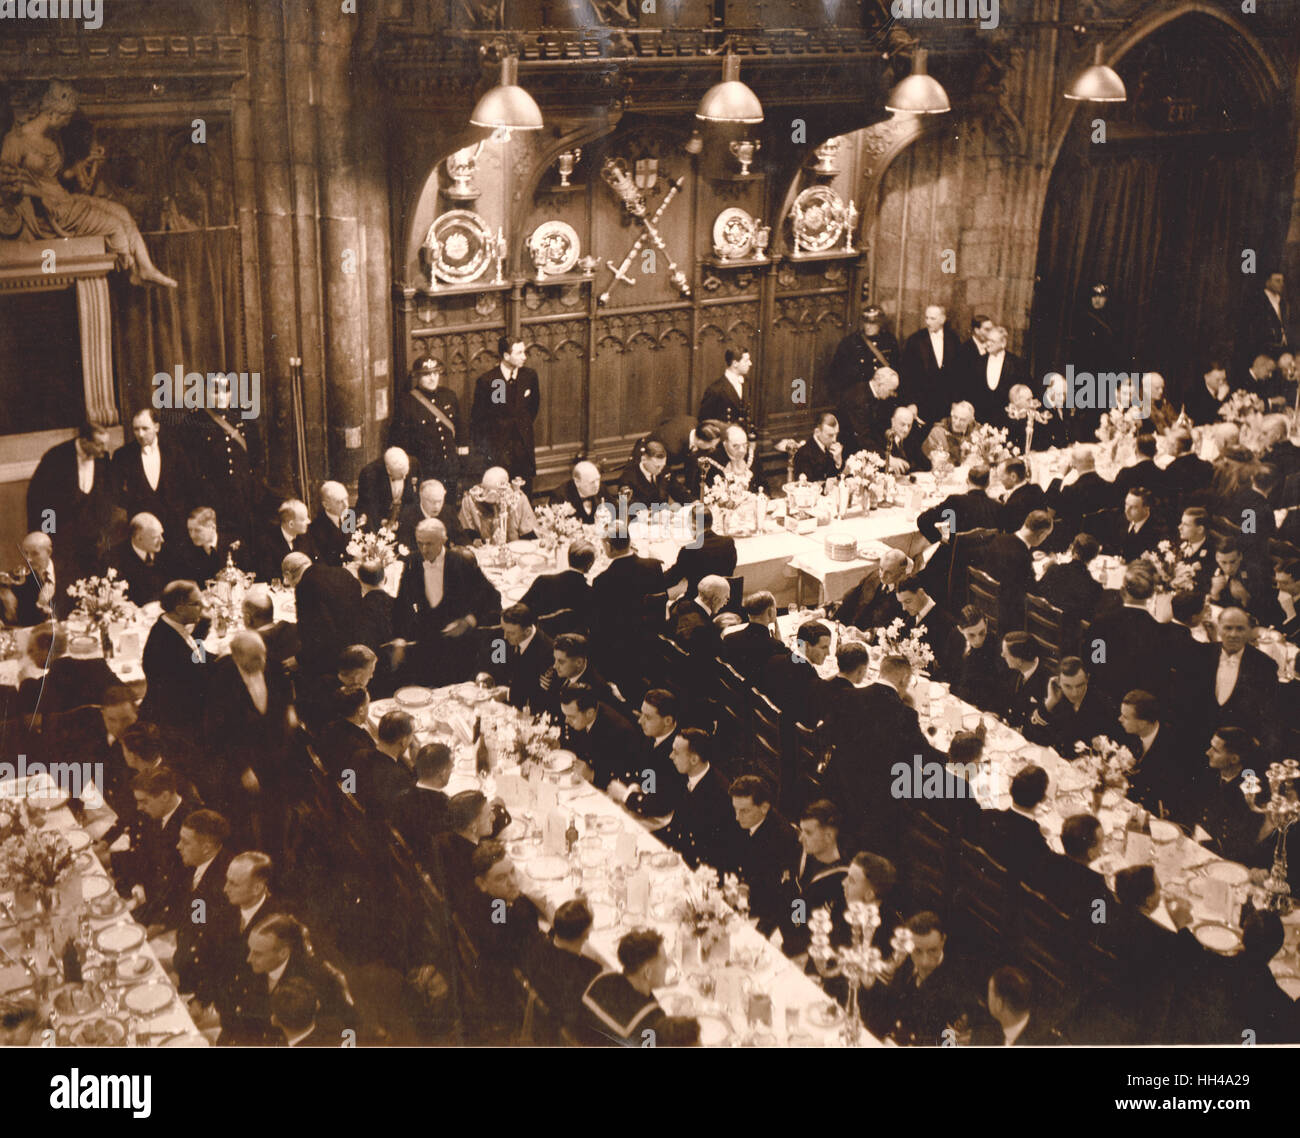 Feb 23rd The Guildhall where a lunch was hosted and attended by Winston Churchill. Graf Spee London Victory Parade - Stock Image